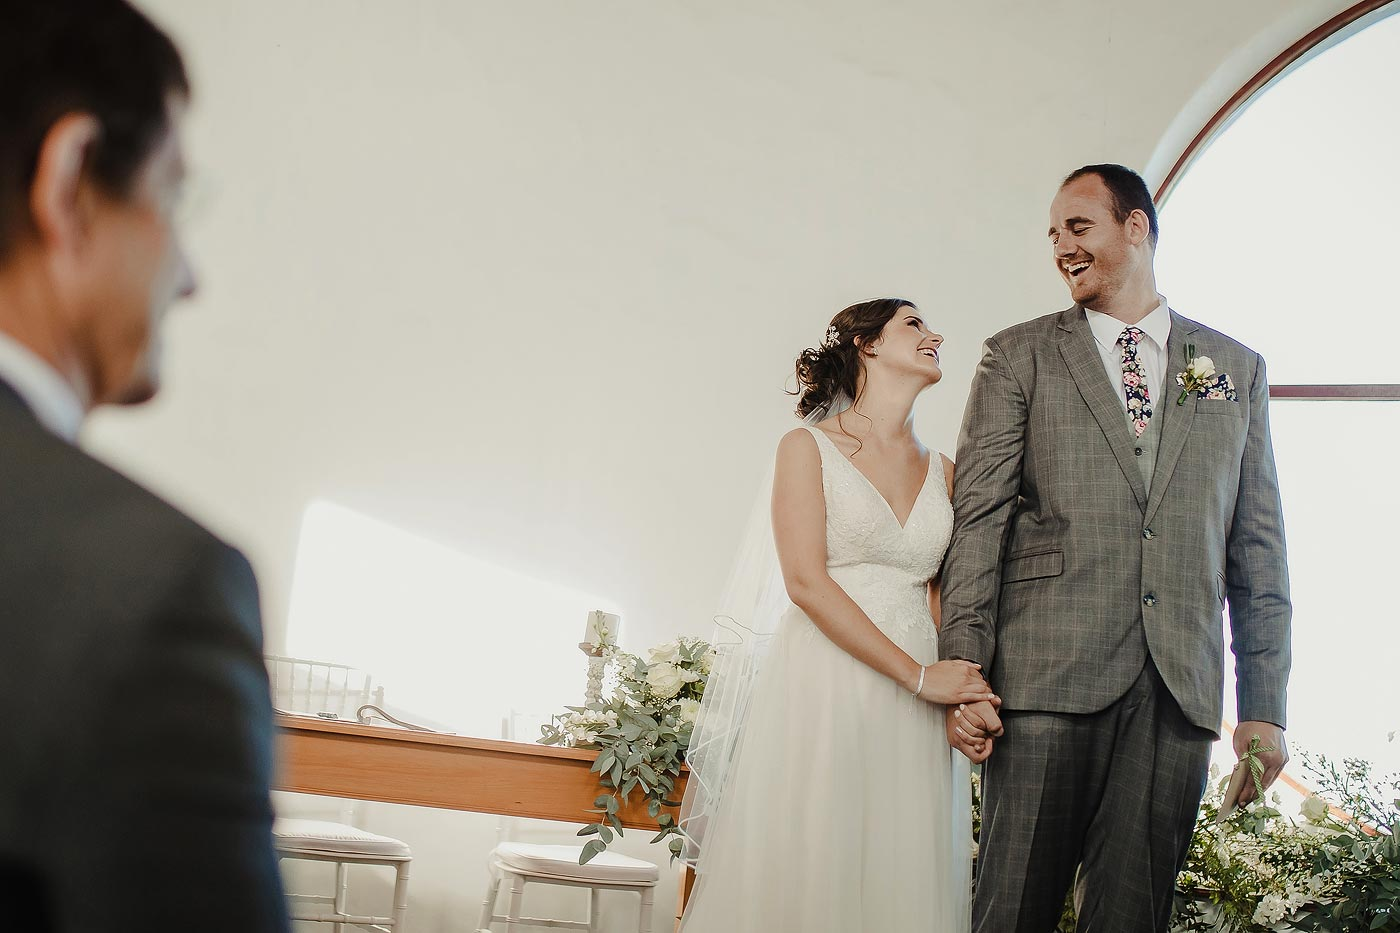 Copy of Bride and groom laughing at wedding ceremony.